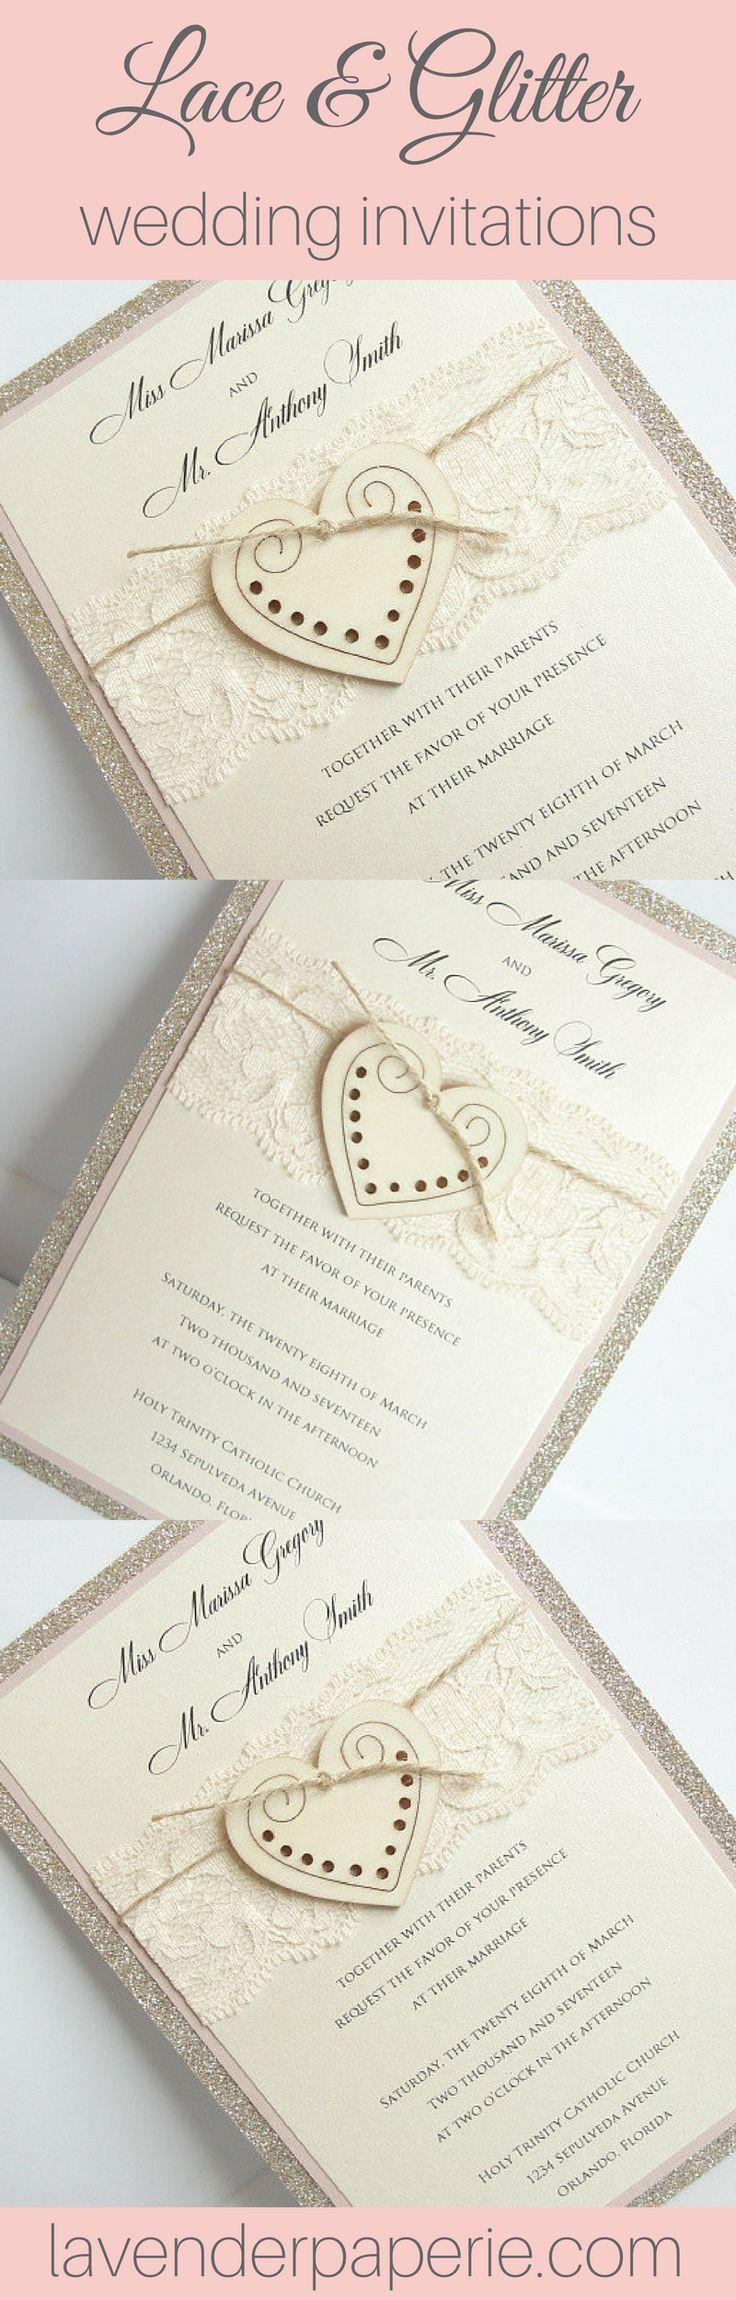 diy wedding invites rustic%0A Heart  glitter  Heart Wedding InvitationsParty